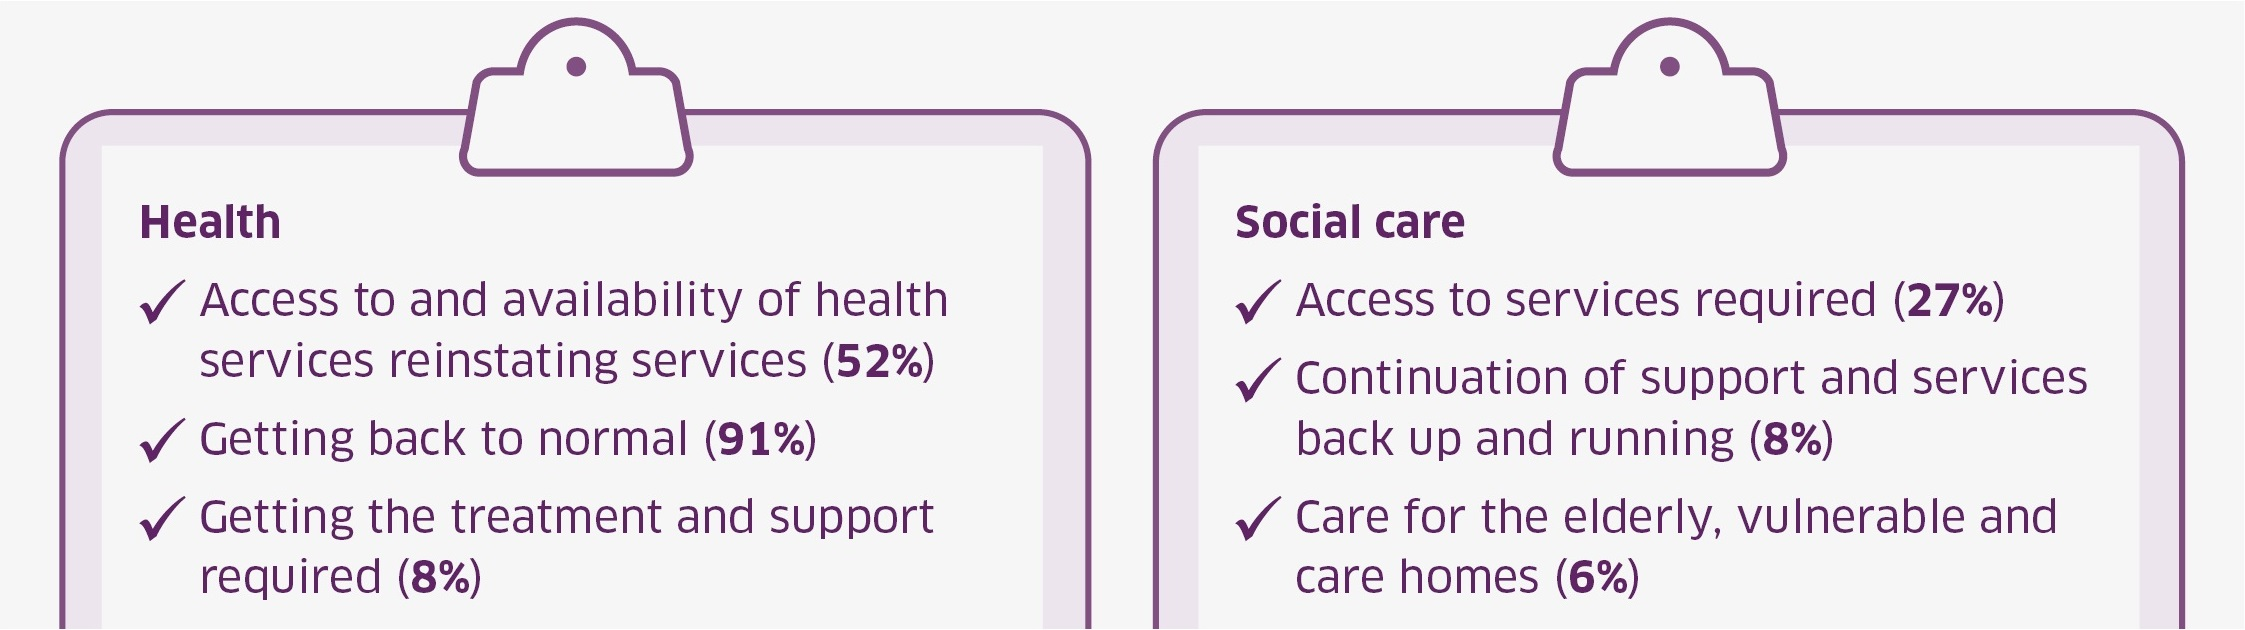 Priorities for health and social care services over the next 12 months